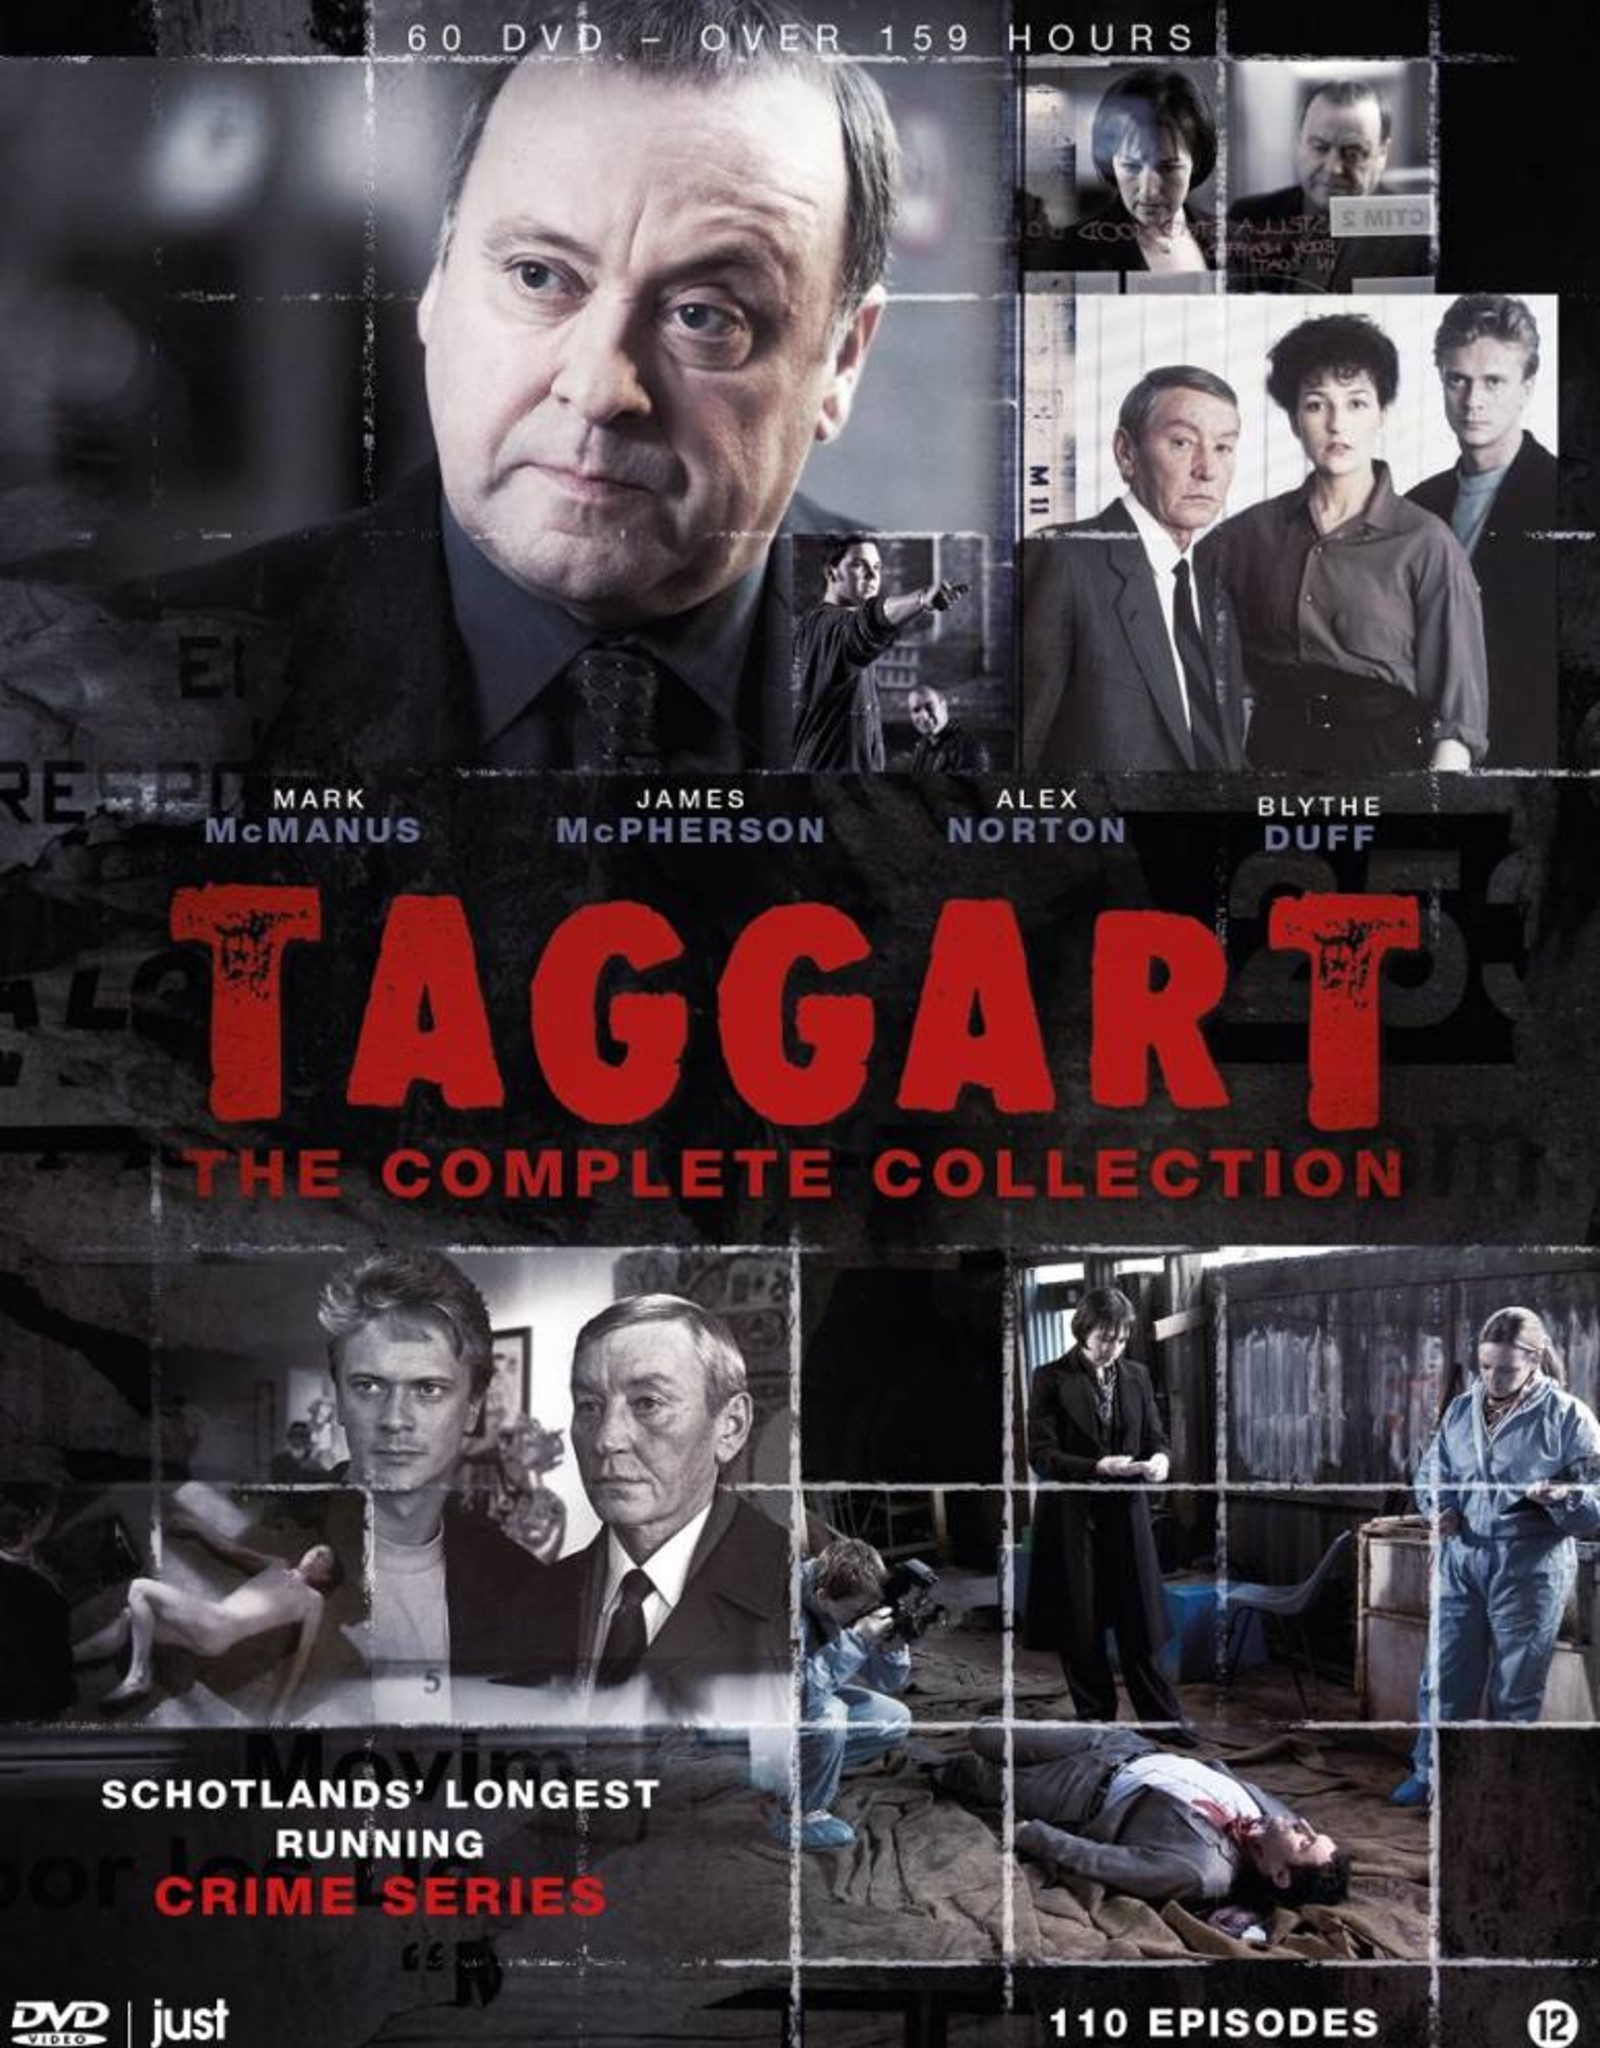 Just Entertainment Taggart - Complete Collection